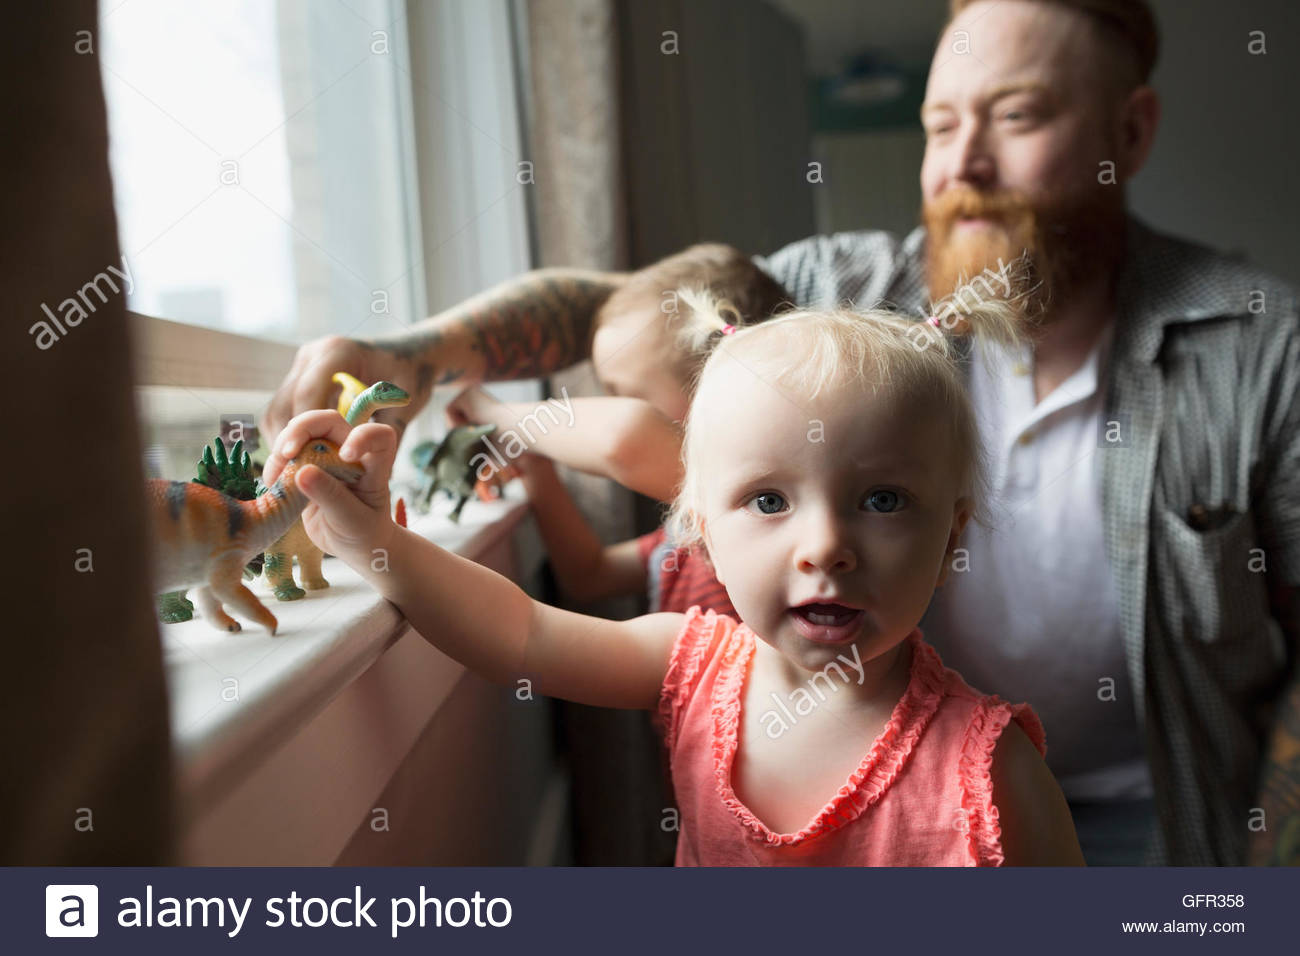 Portrait daughter and father playing with toy dinosaurs at windowsill Stock Photo